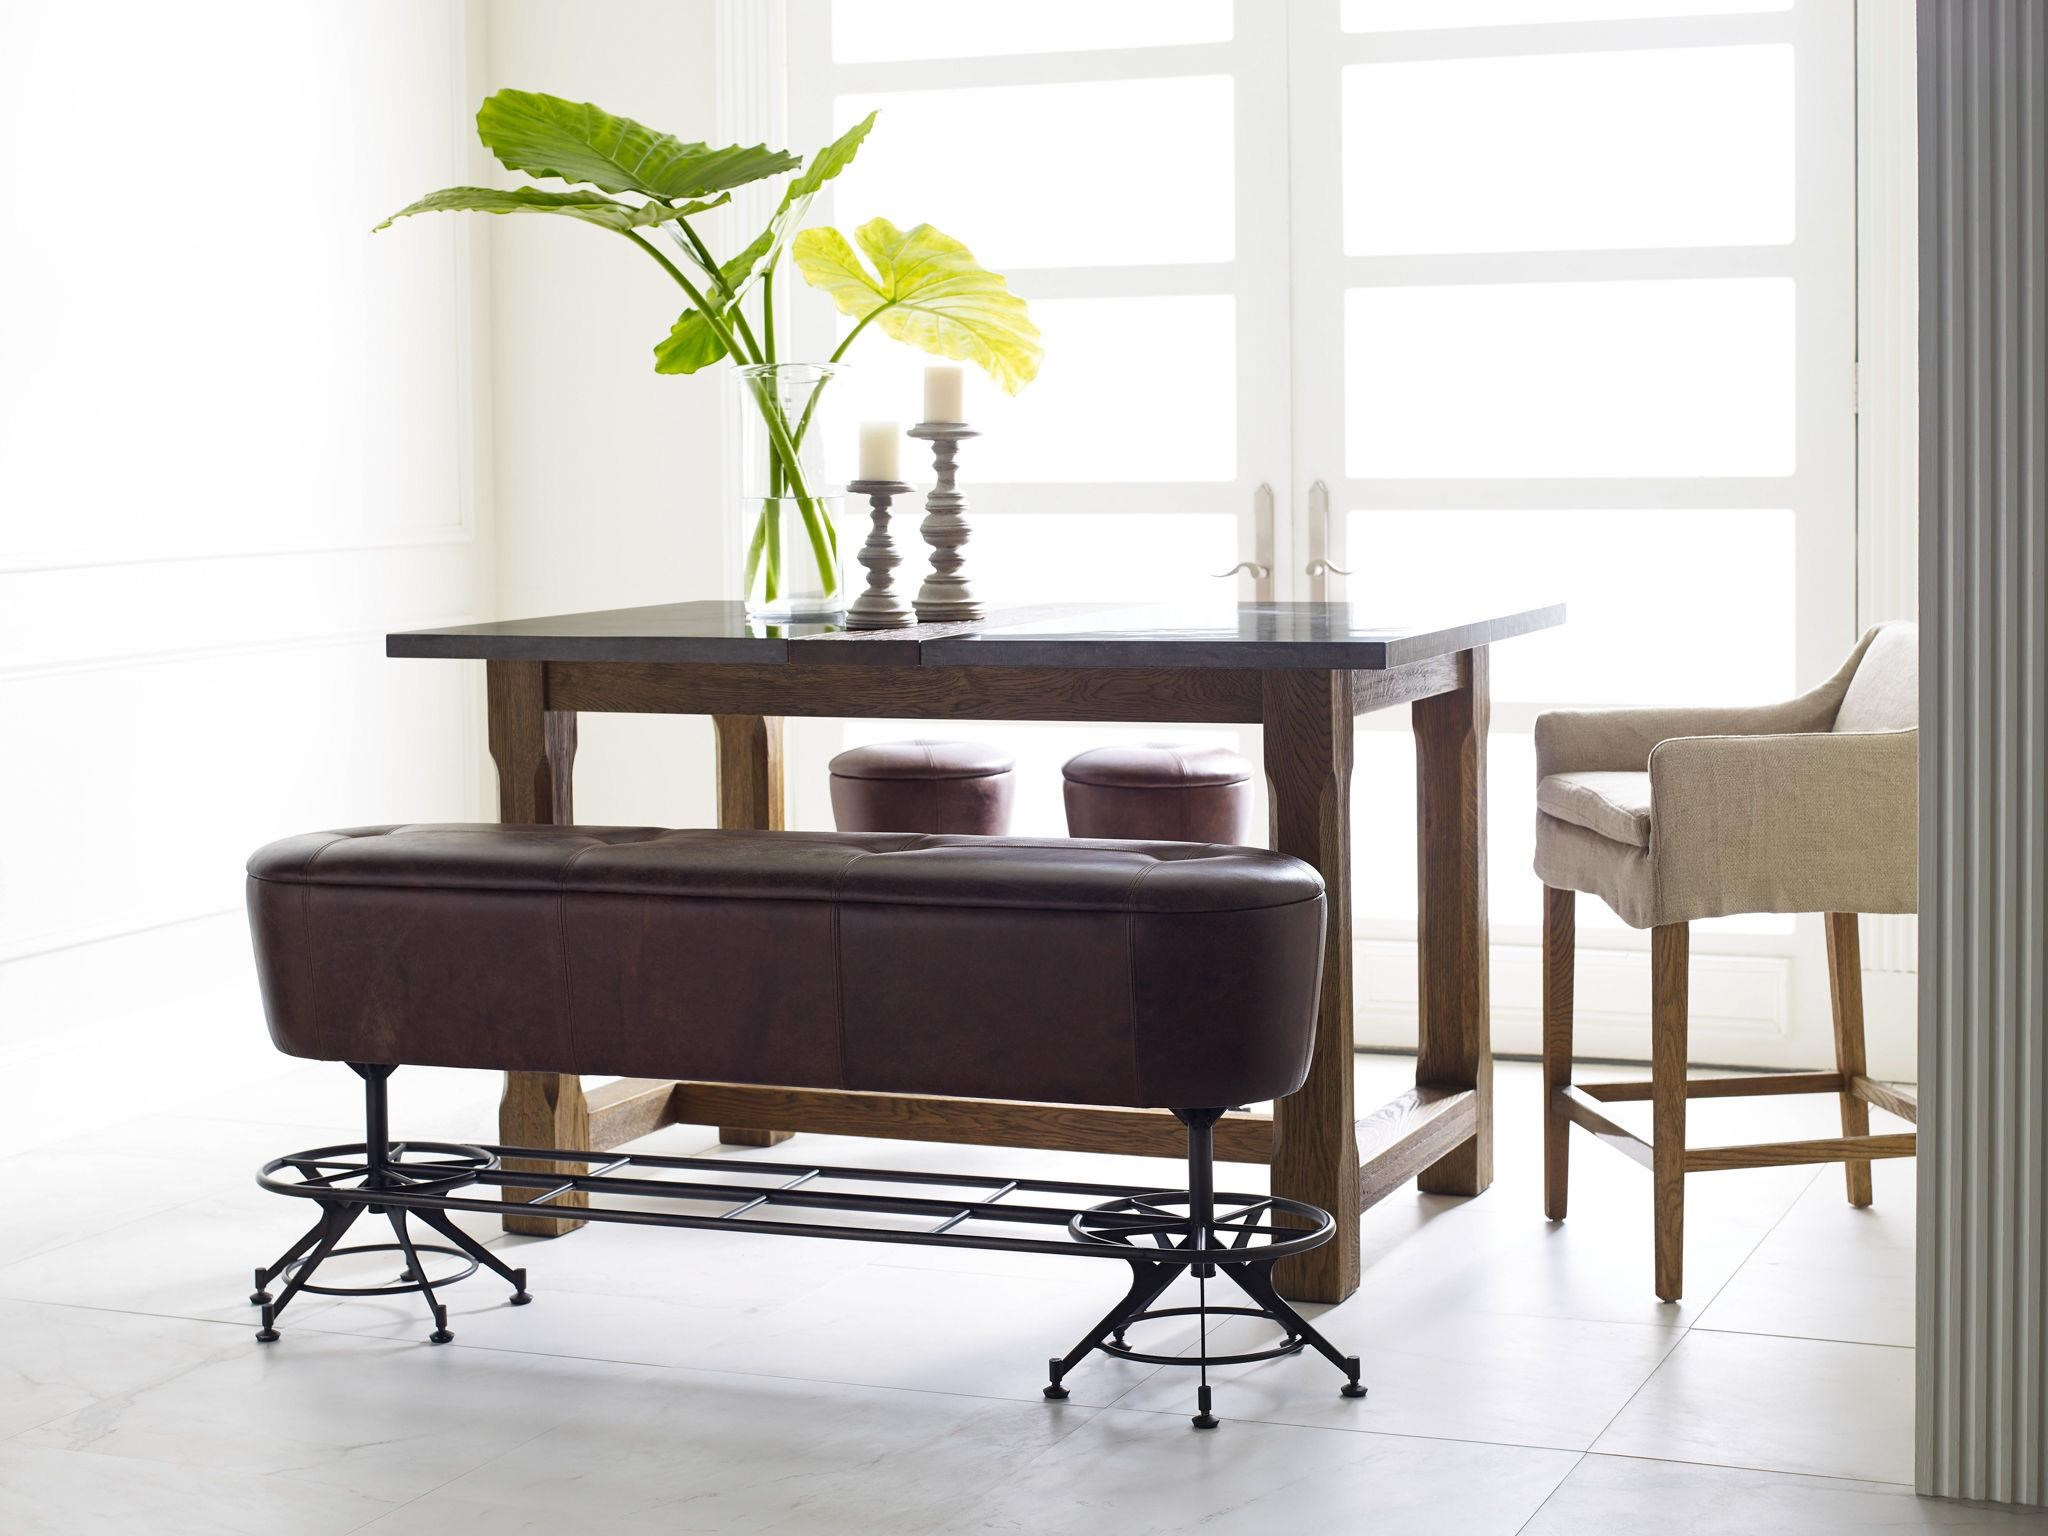 Marvelous Four Hands Irondale Giles Counter Height Leather Dining Bench With  Industrial Metal Base